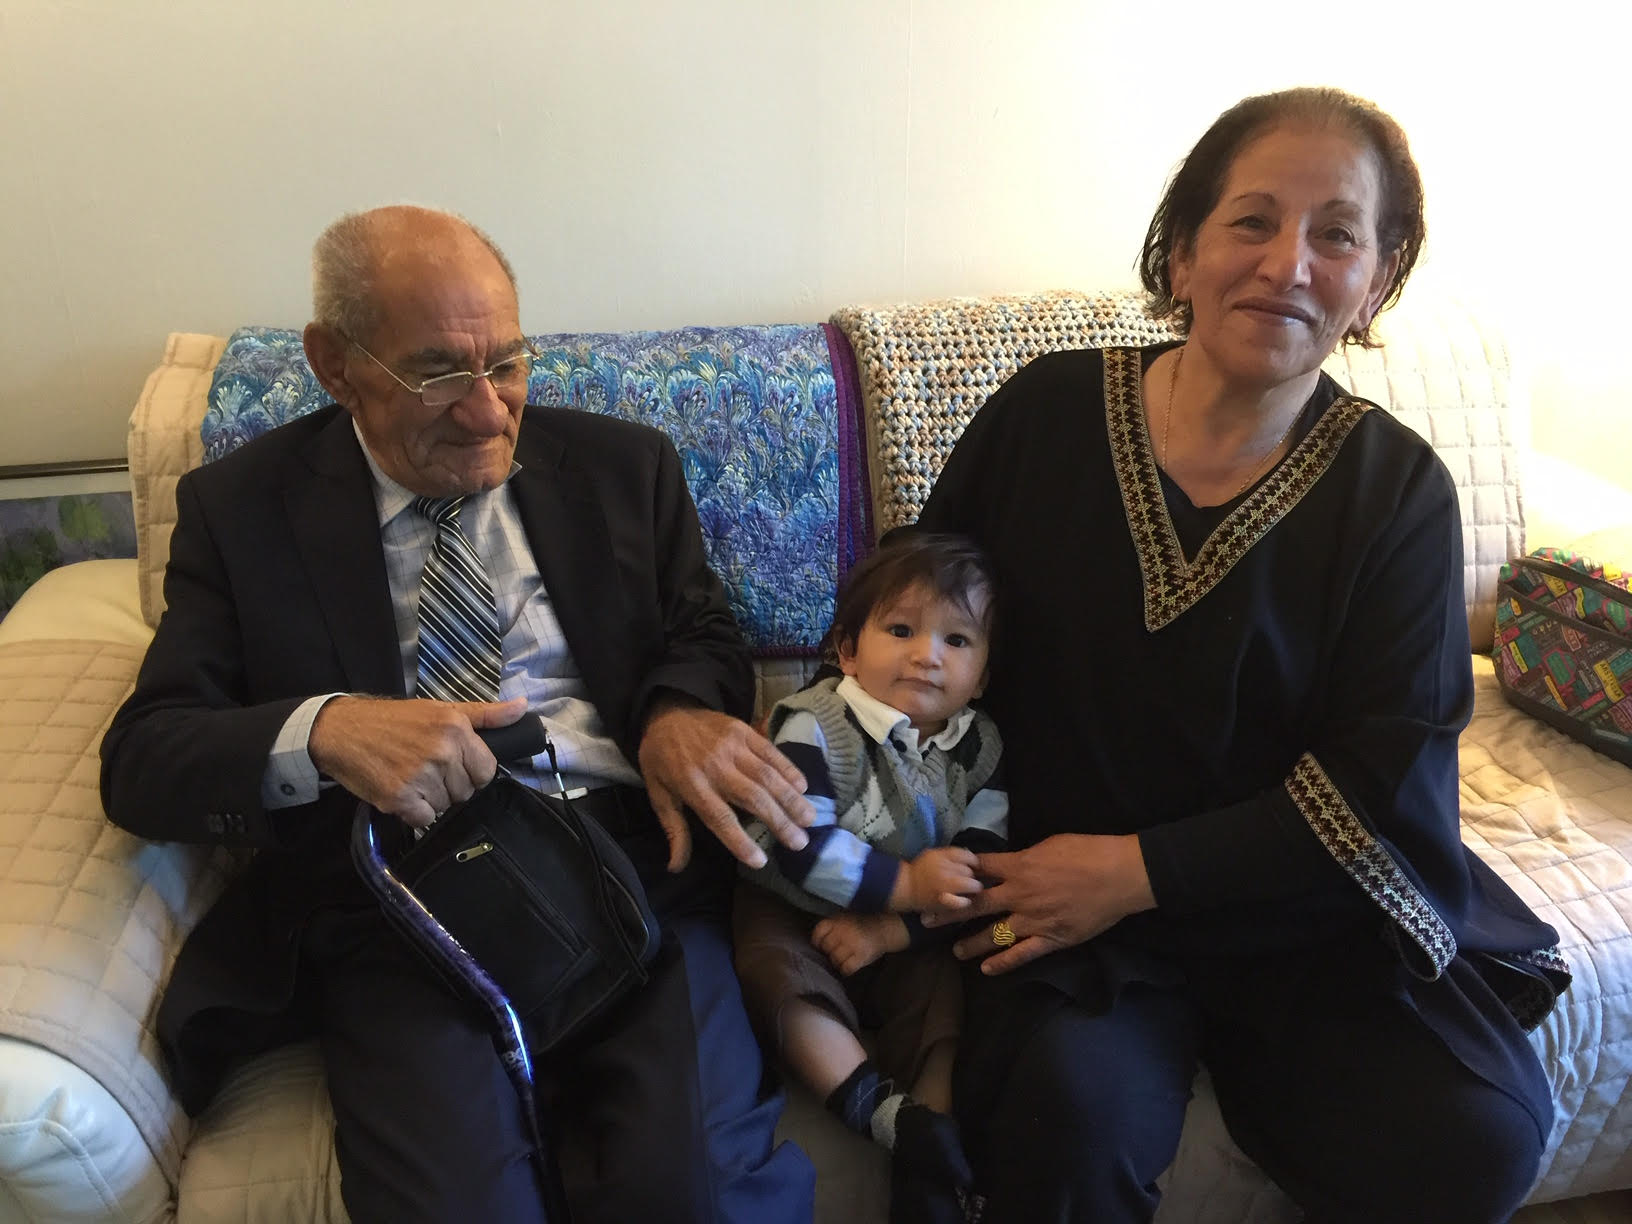 Shadi's mother and father with his oldest son, Sami